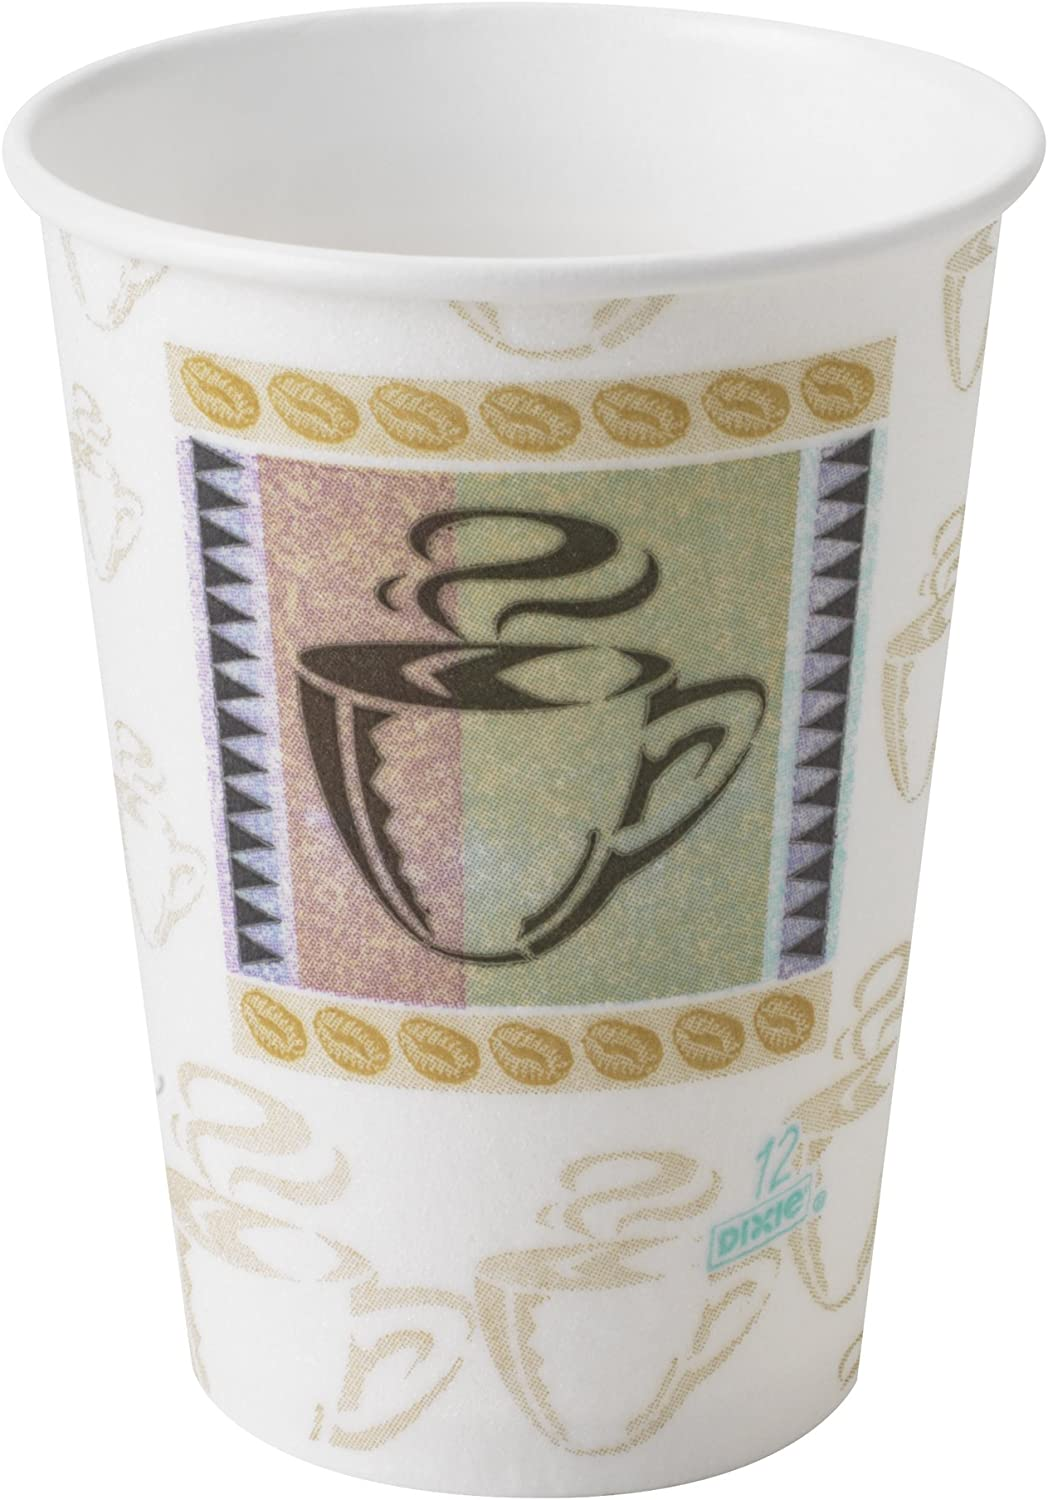 Georgia-Pacific 25 Cups Per Sleeve, 20 Sleeves Per Case 5342DX, 500 Cups Coffee Haze .1 Pack Dixie PerfecTouch 12 Oz Insulated Paper Hot Coffee Cup by GP PRO